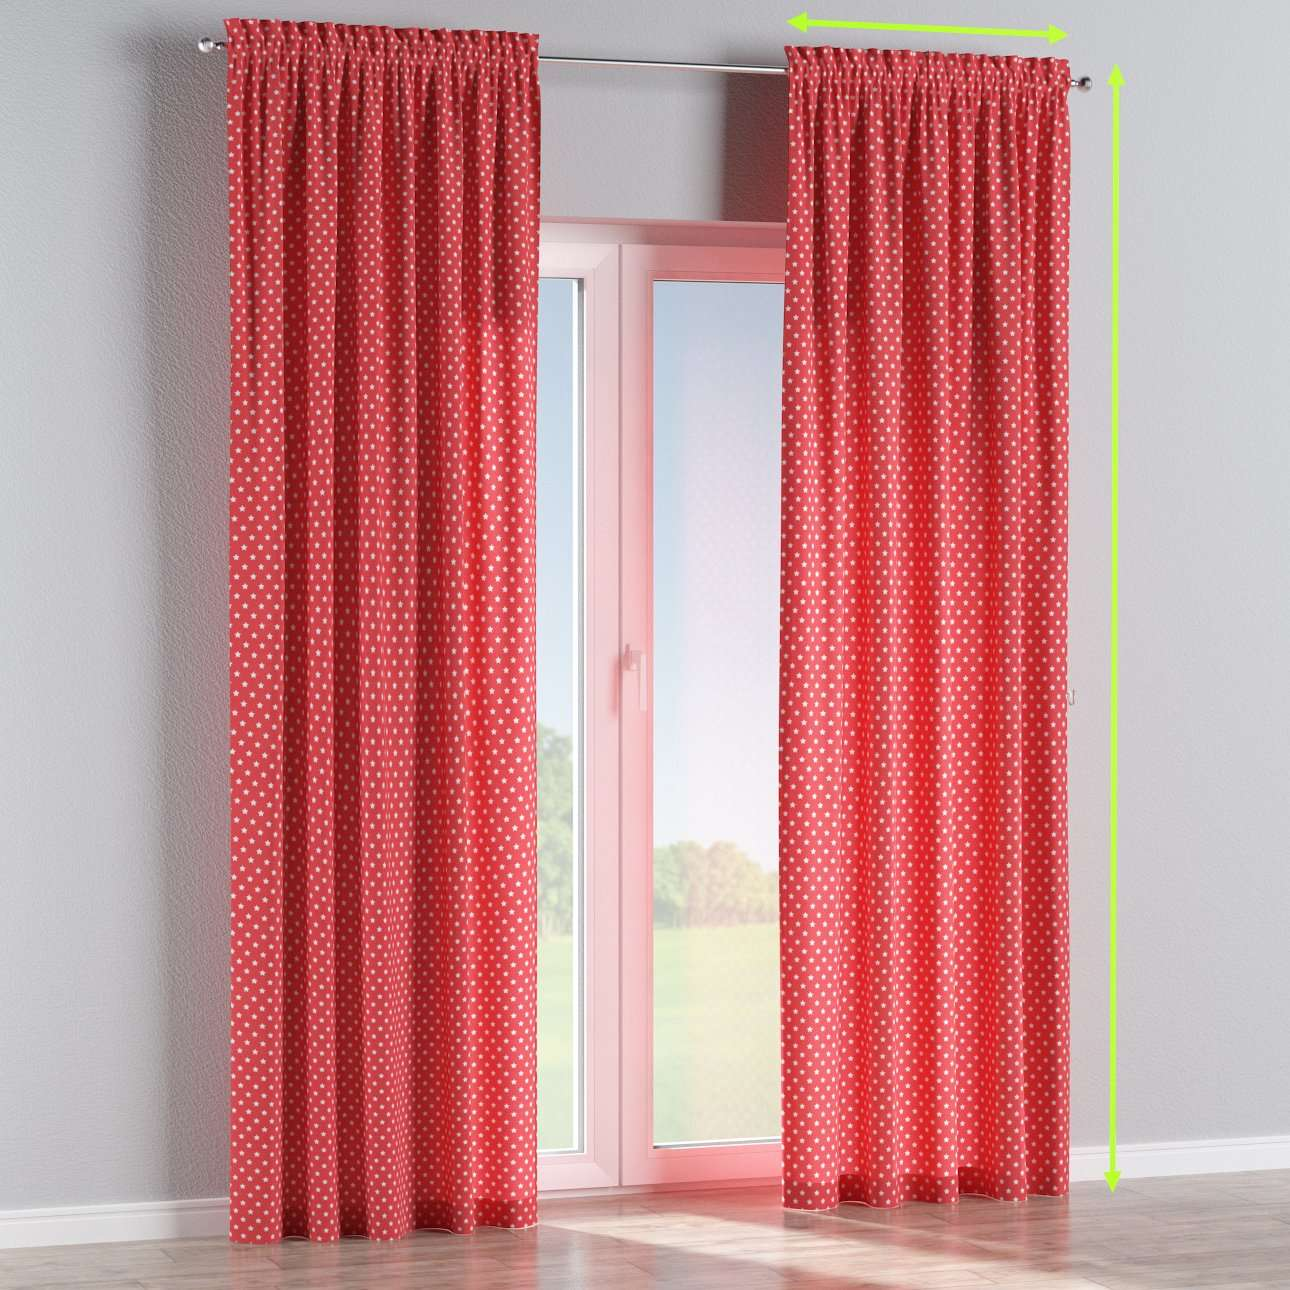 Slot and frill curtains in collection Ashley, fabric: 137-69